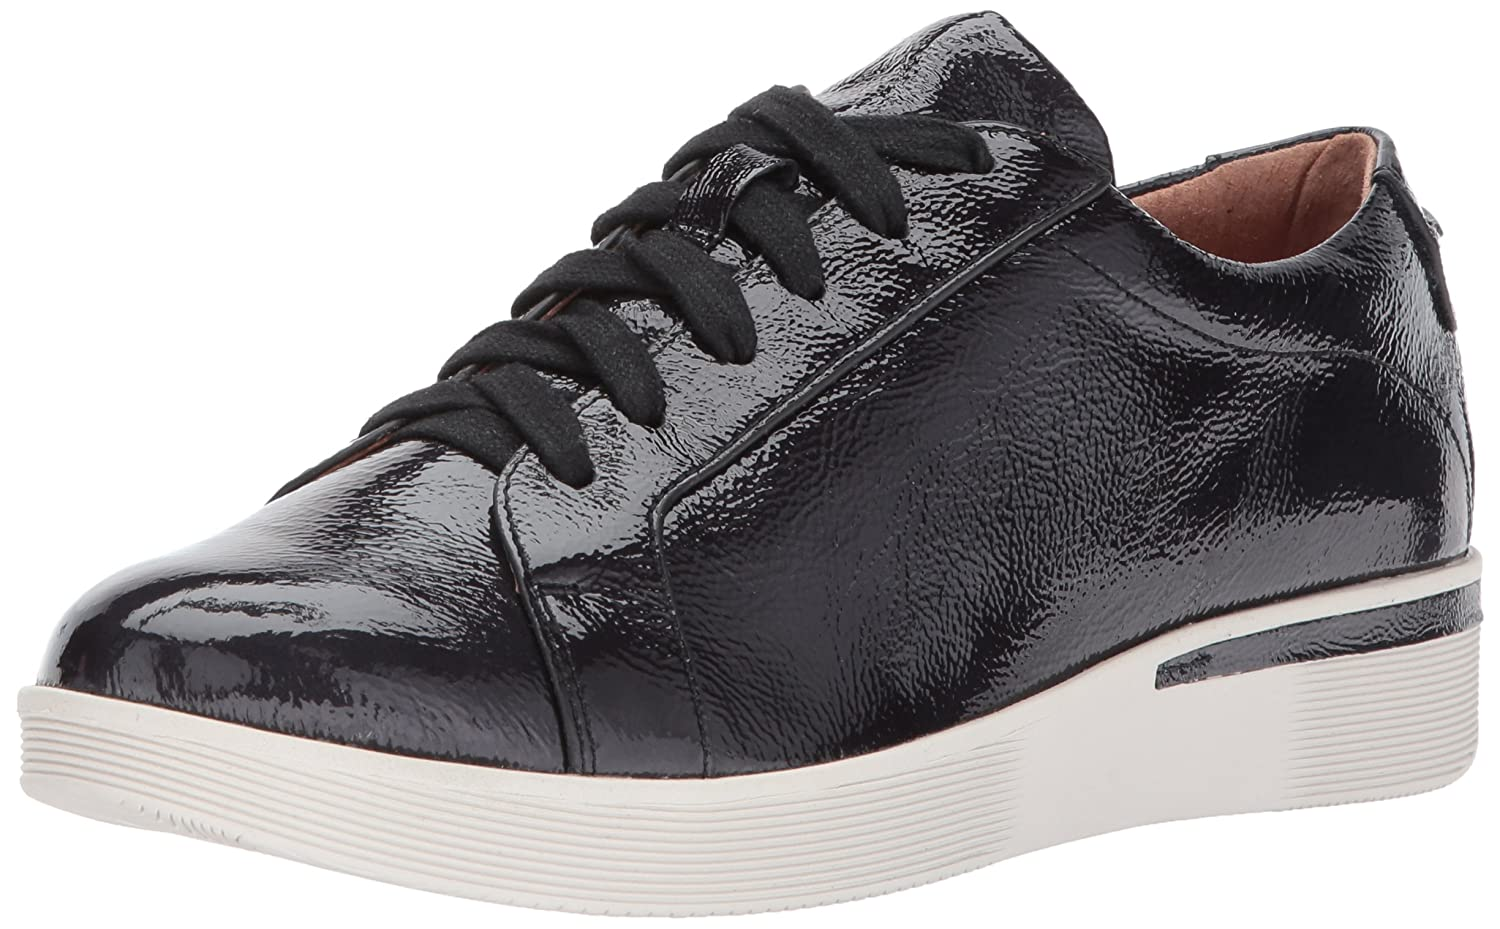 Gentle Souls by Kenneth Cole Women's Haddie Low Profile Fashion Sneaker Embossed Fashion Sneaker B071VCNJRY 8 M US|Black Patent